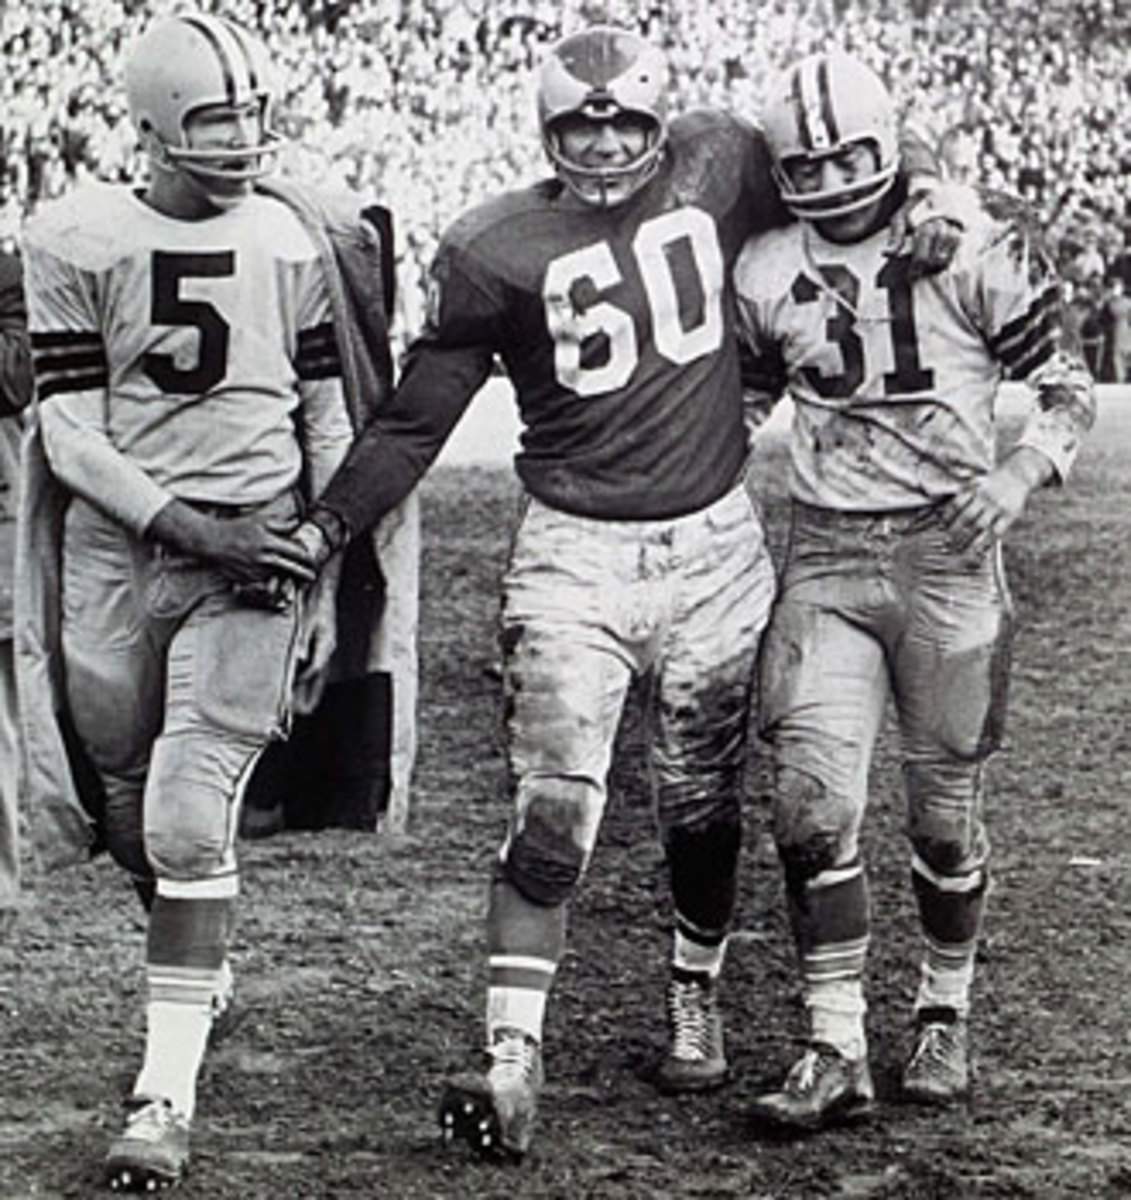 After nailing down the 1960 NFL title, Bednarik consoled Green Bay's Paul Hornung (left) and Jim Taylor.